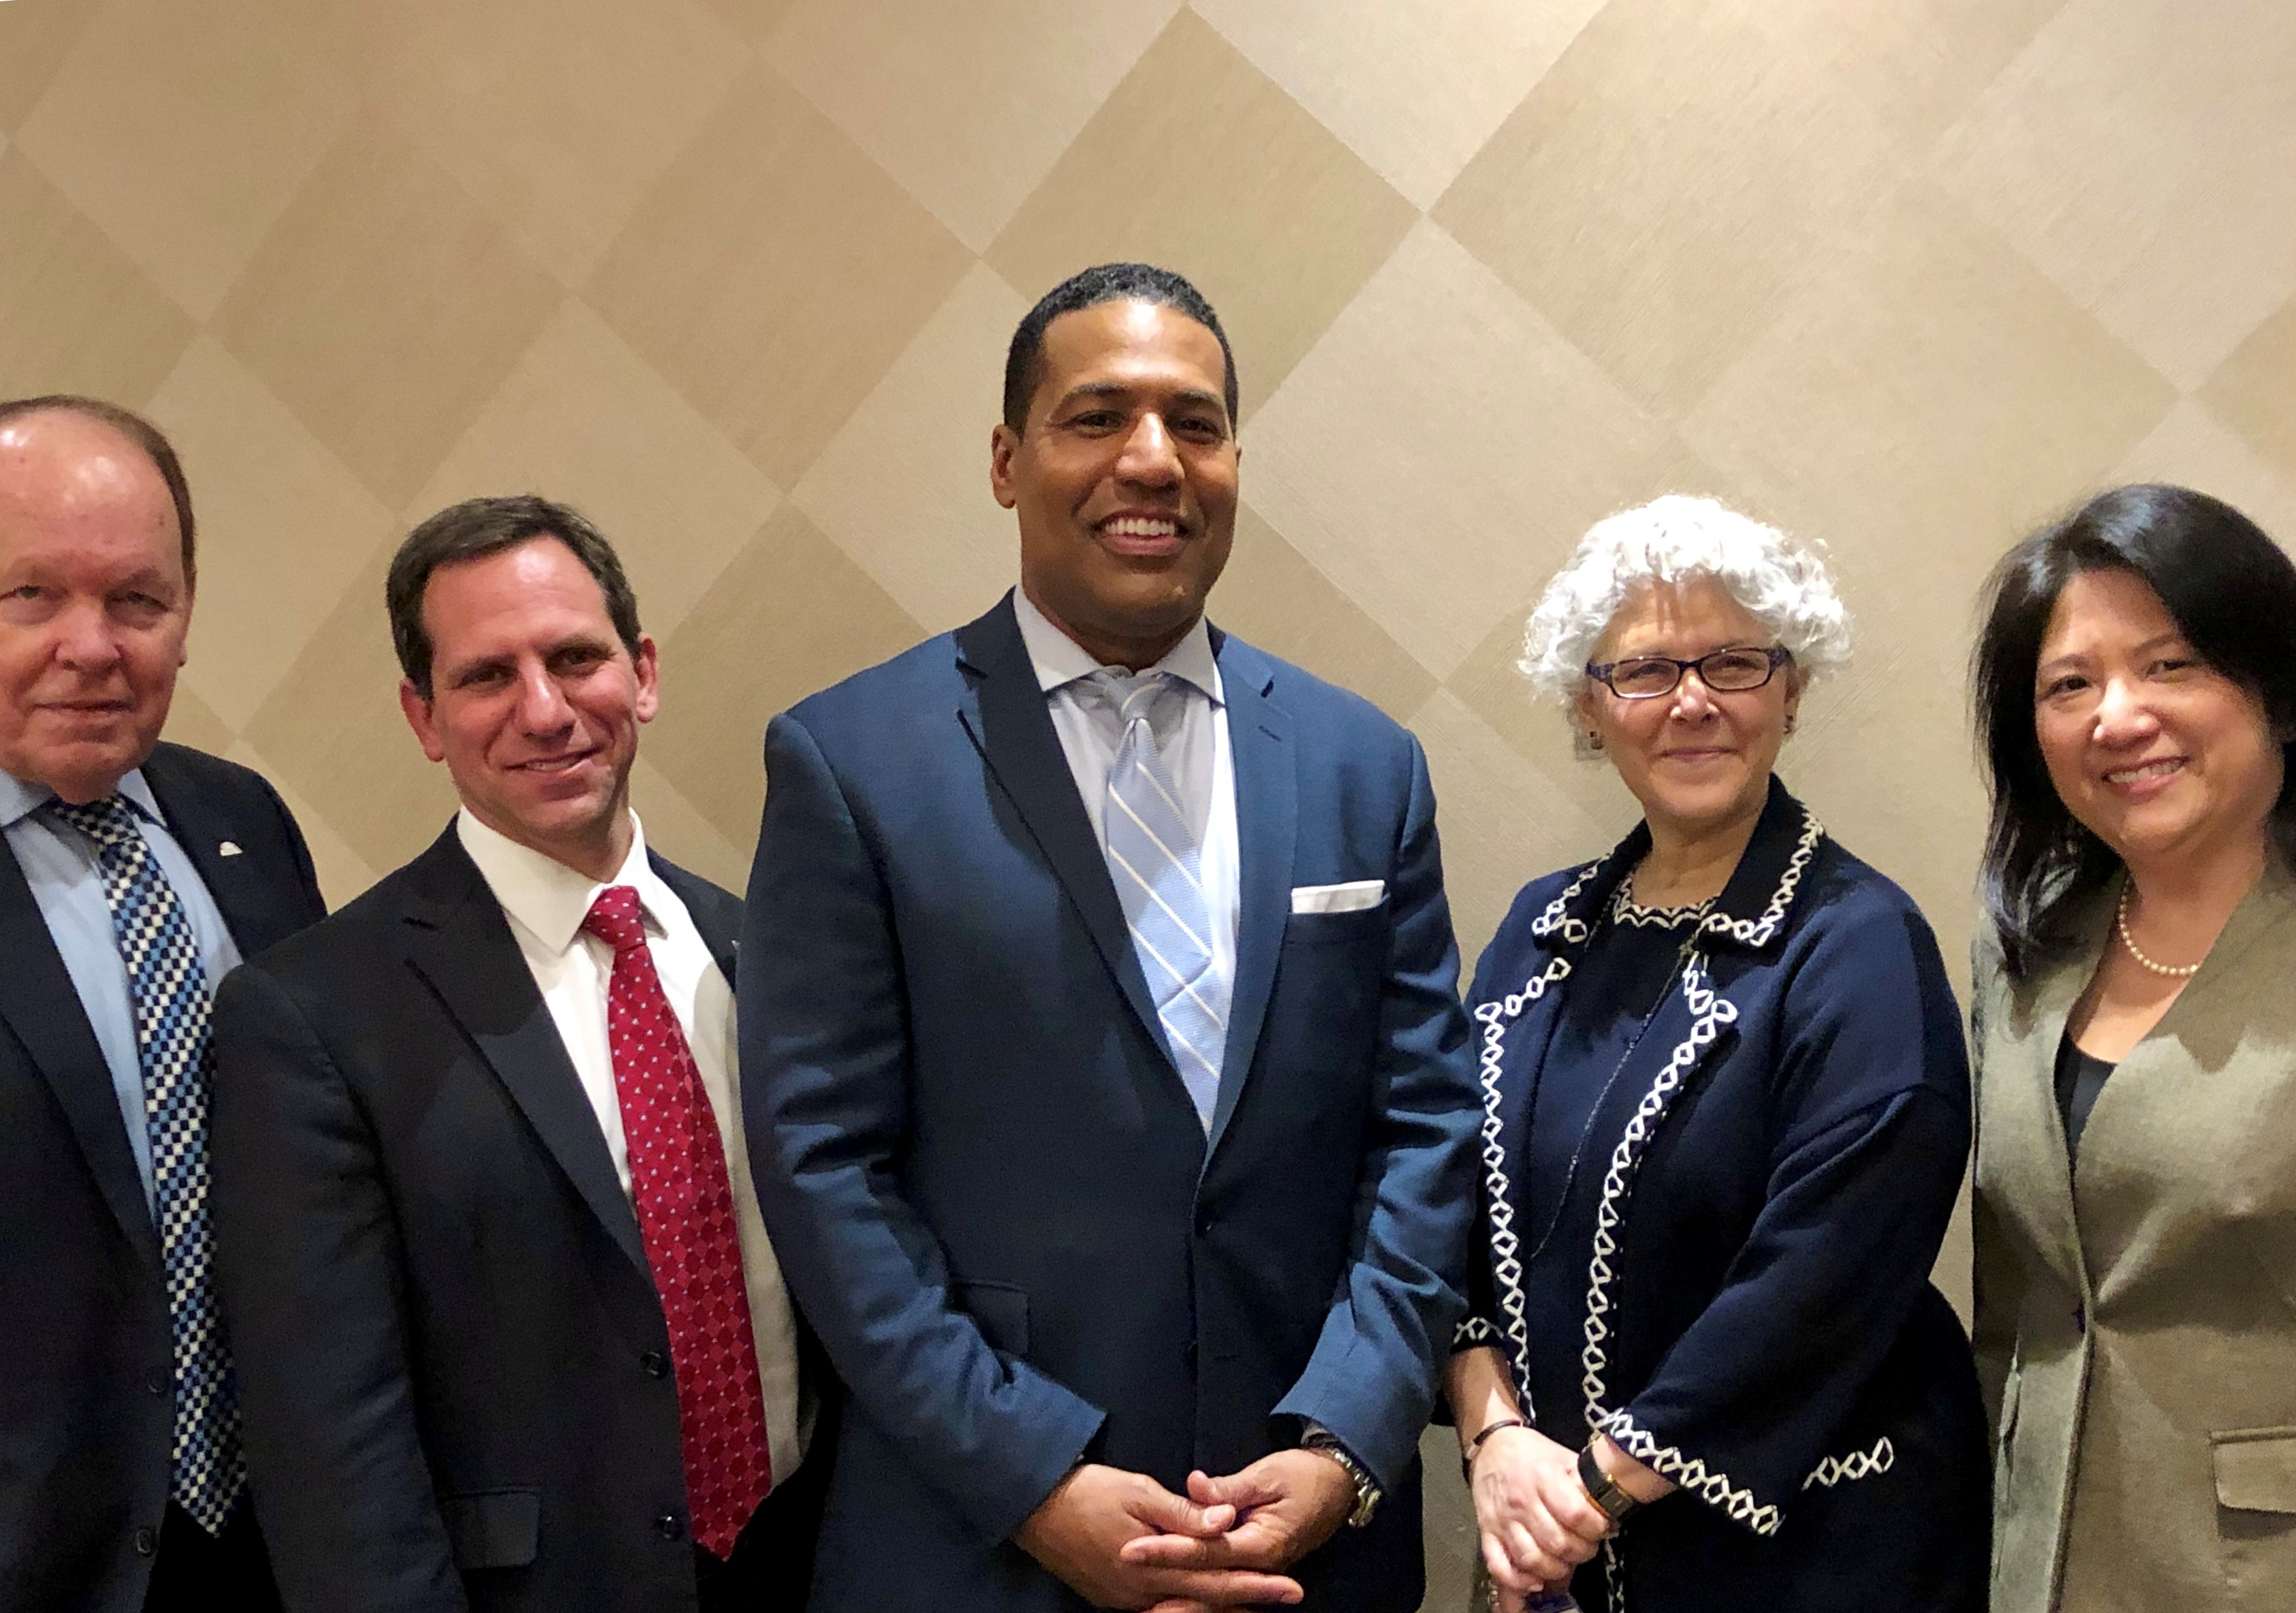 CBA President Jonathan M. Shapiro and Vice President Amy Lin Meyerson, along with past presidents Livia D. Barndollar (2008-2009) and Barry C. Hawkins (2012-2013), met with CNN Legal Analyst Joey Jackson during 2019 ABA Day.